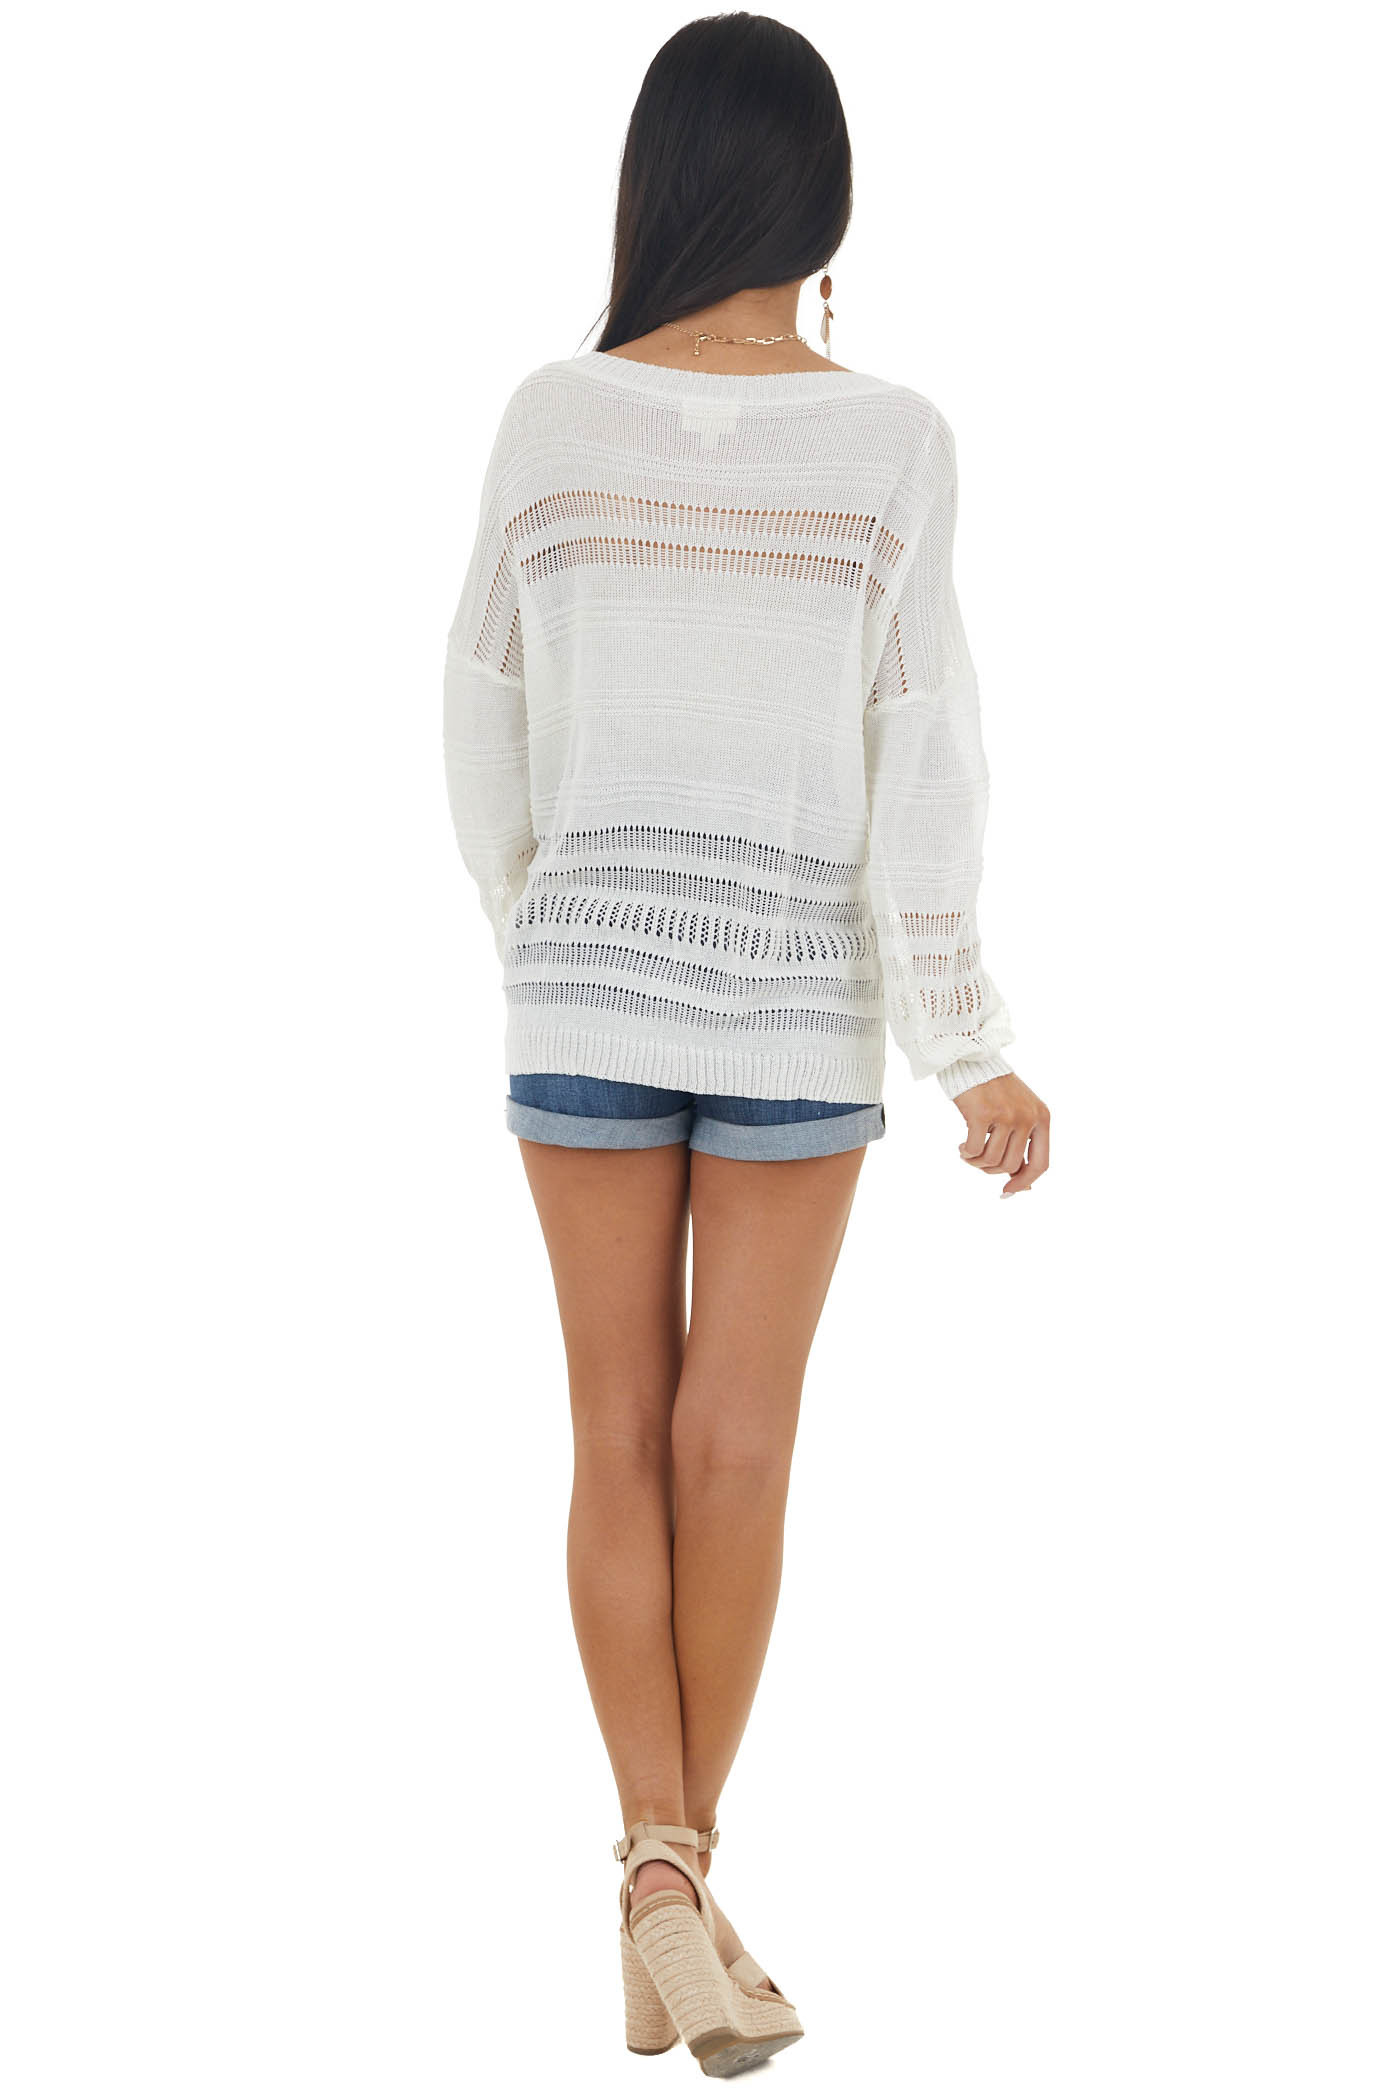 Ivory Lightweight Long Sleeve Stretchy Loose Knit Top